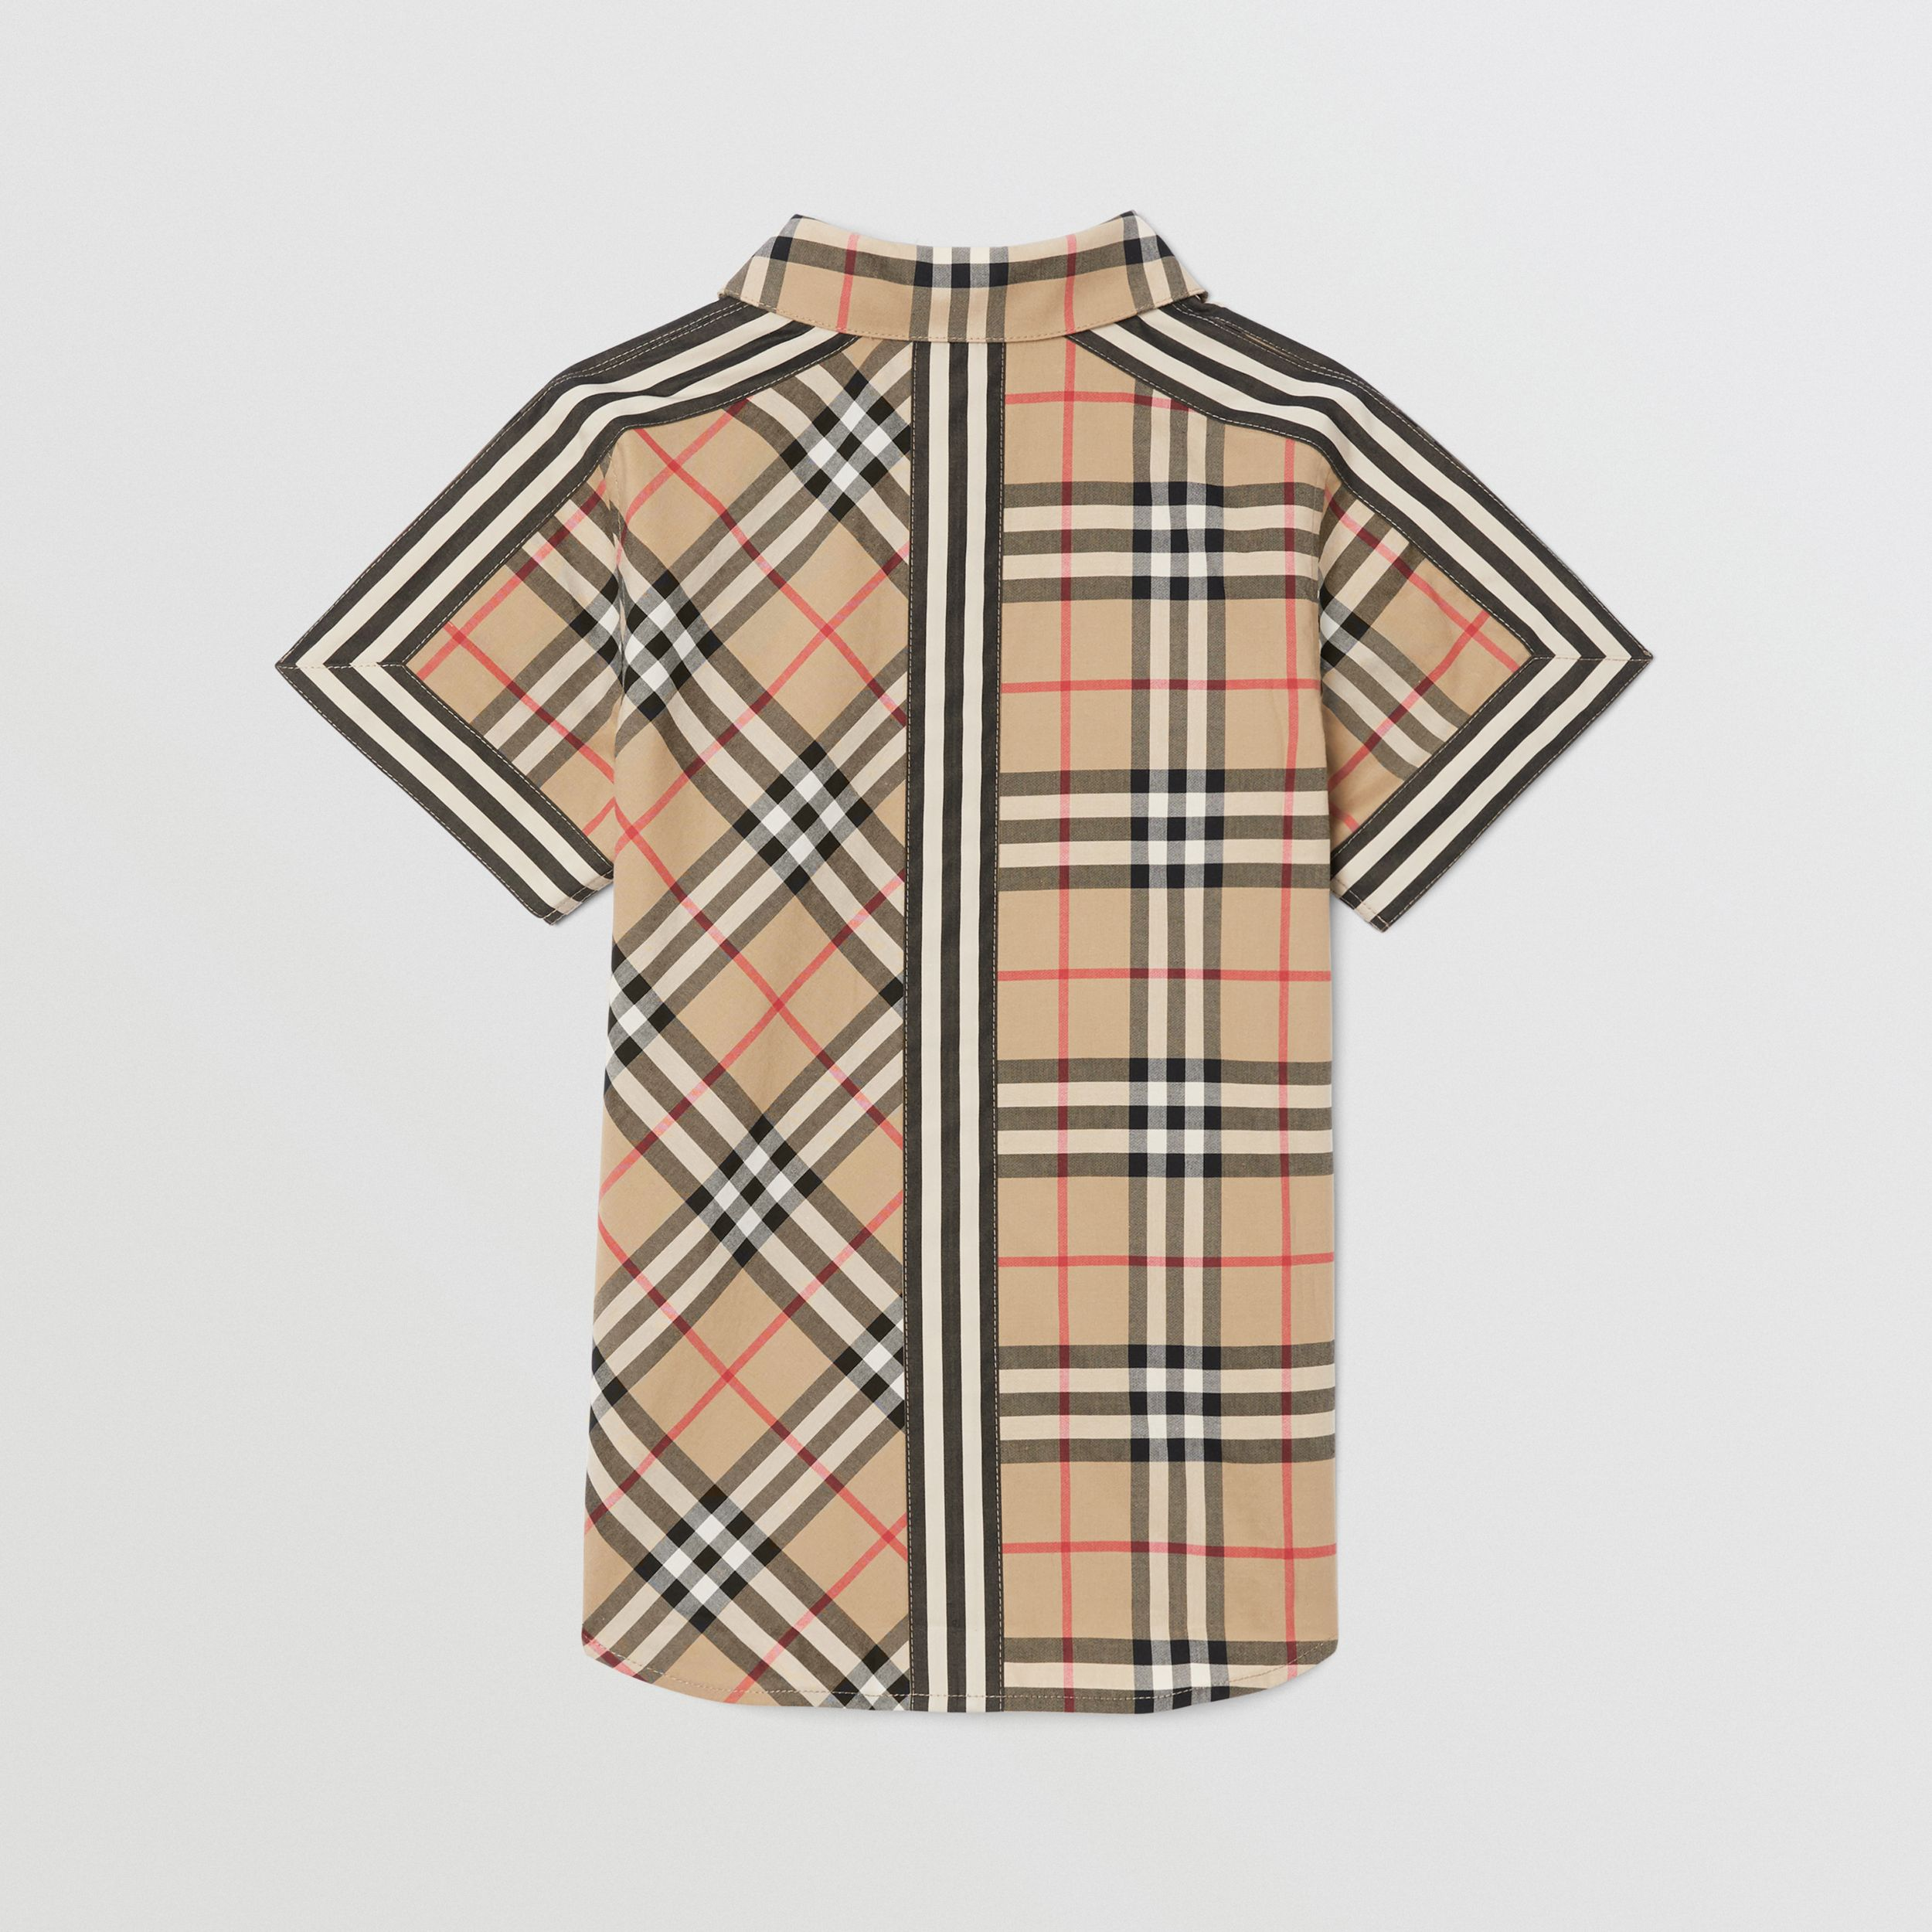 Short-sleeve Vintage Check Patchwork Cotton Shirt in Archive Beige | Burberry United States - 4